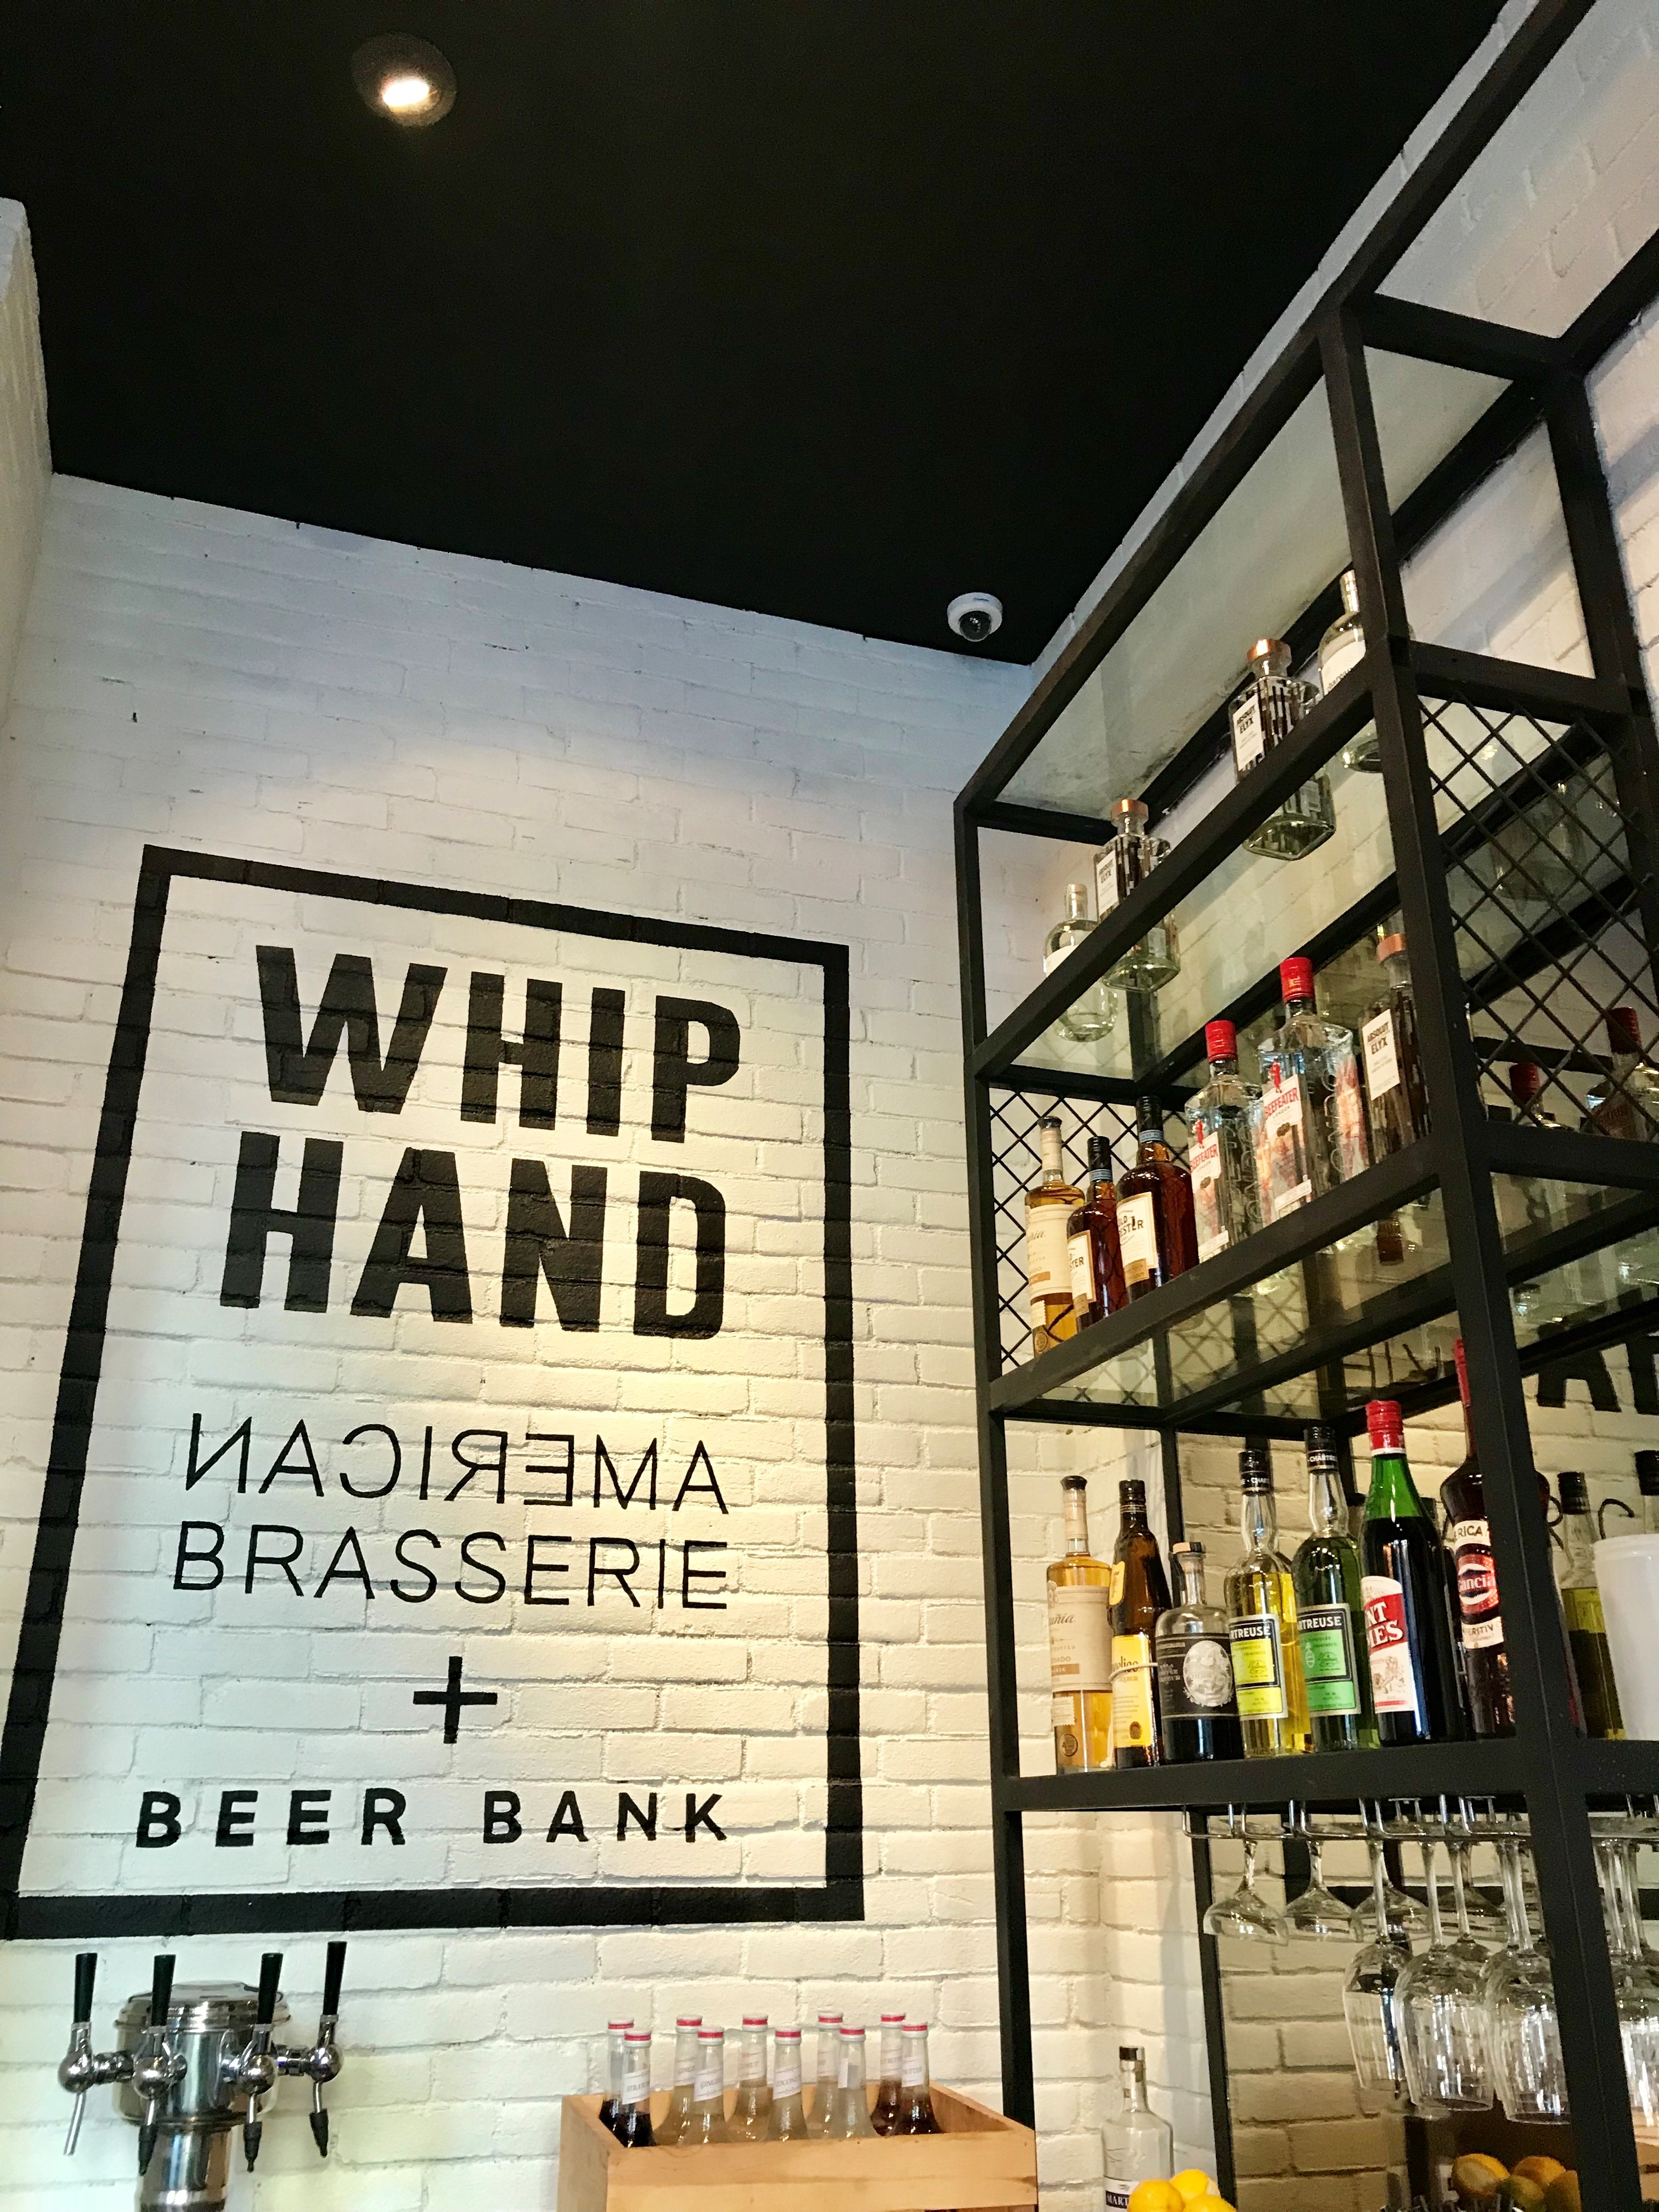 WhipHand Debuts in the Gaslamp